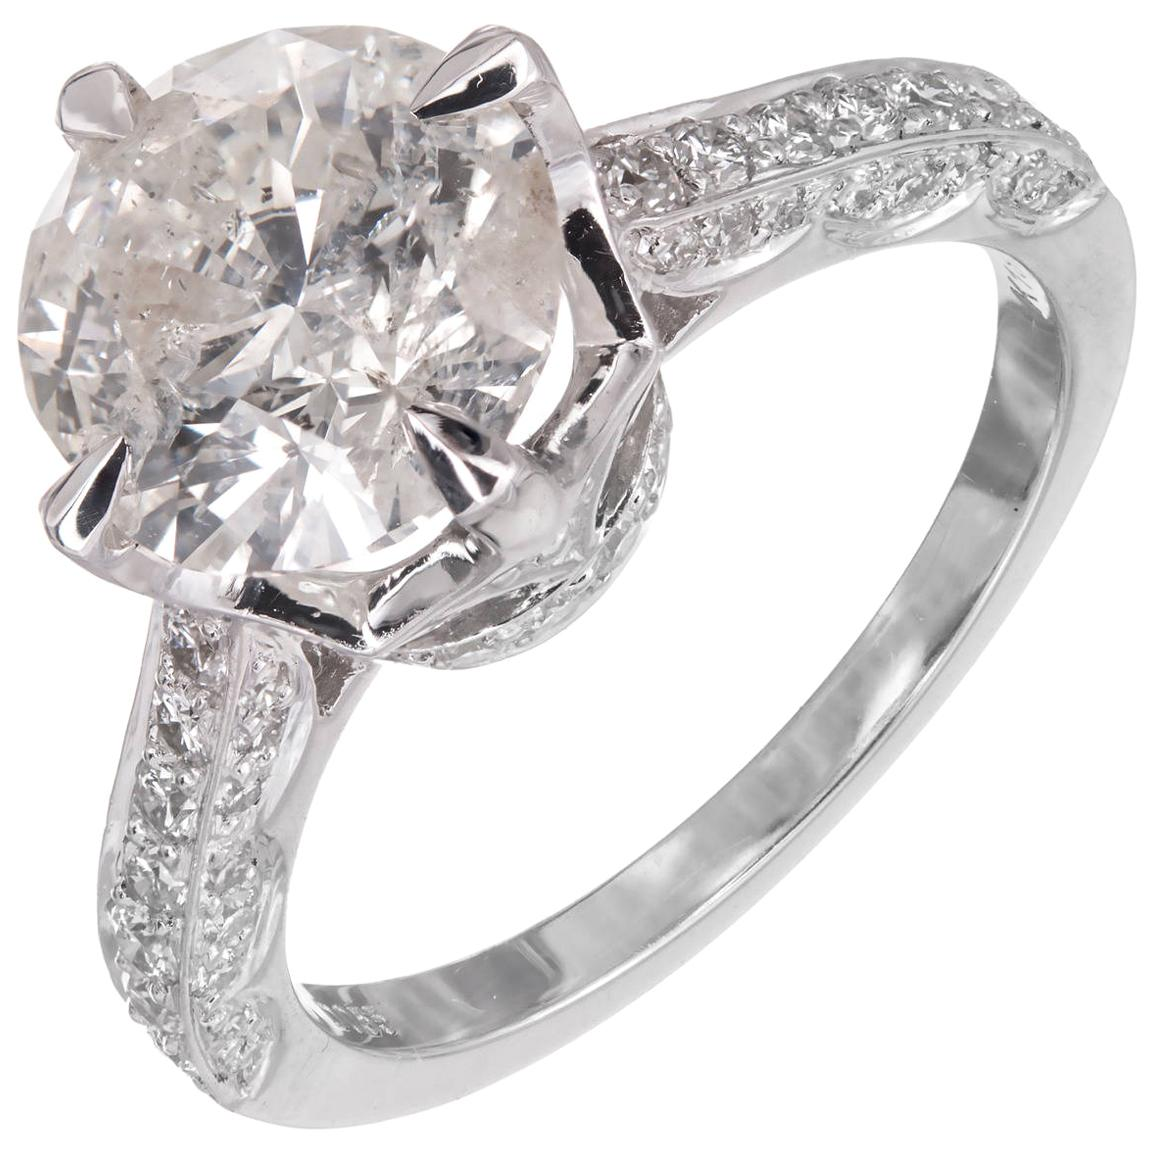 2.51 Carat Round Diamond Gold Solitaire Engagement Ring